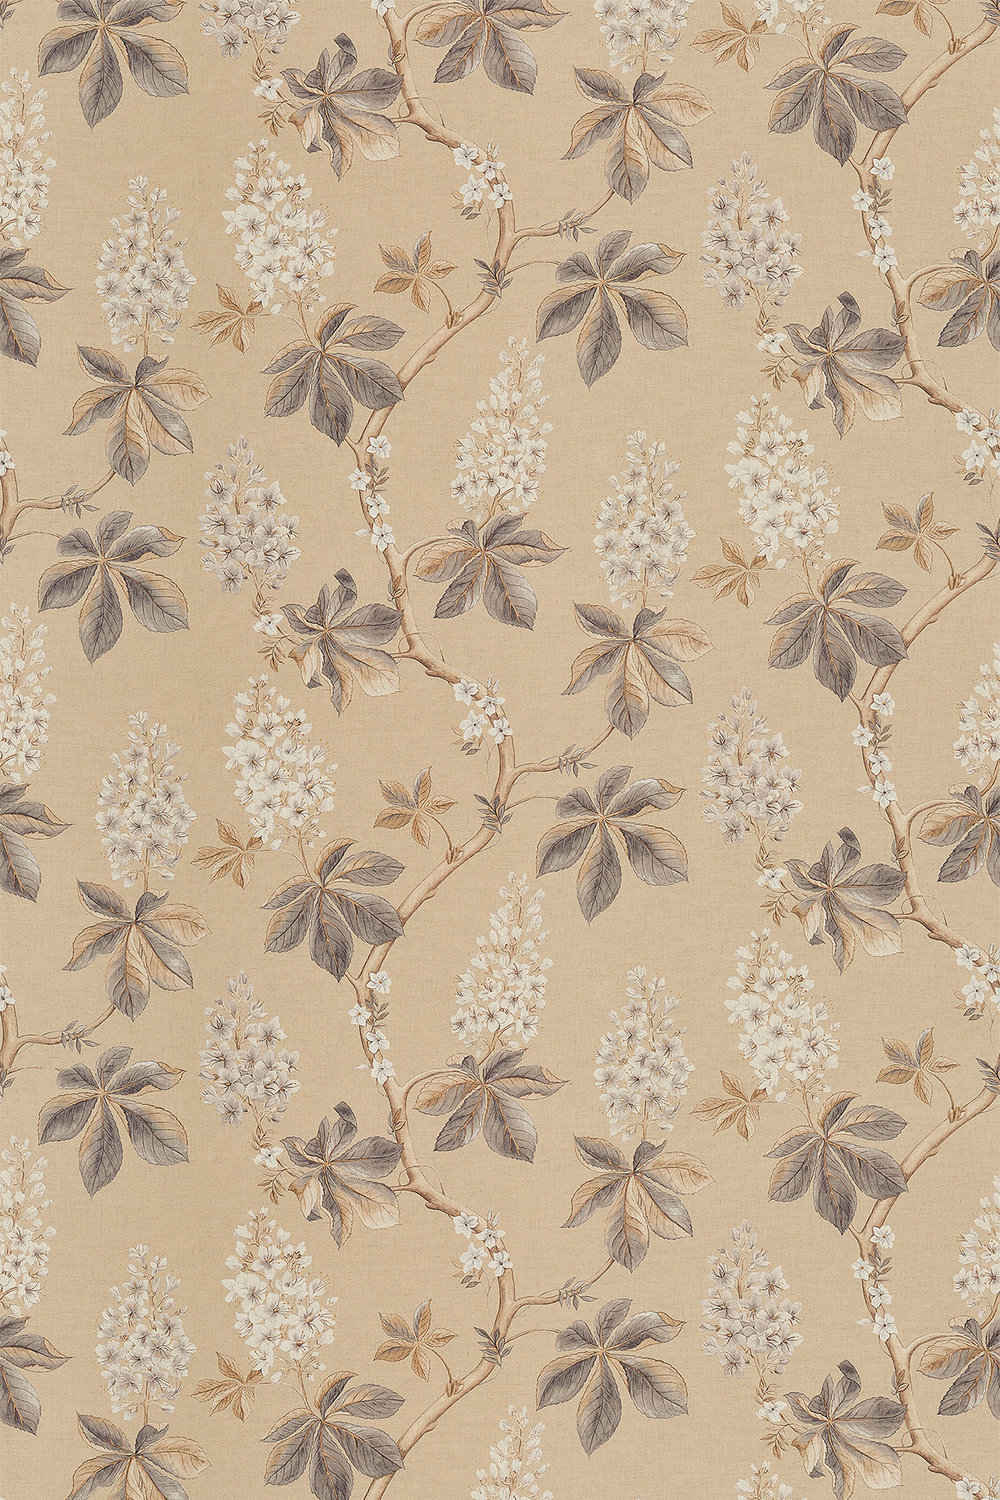 Chestnut Tree By Sanderson Wheat Pebble Wallpaper Direct